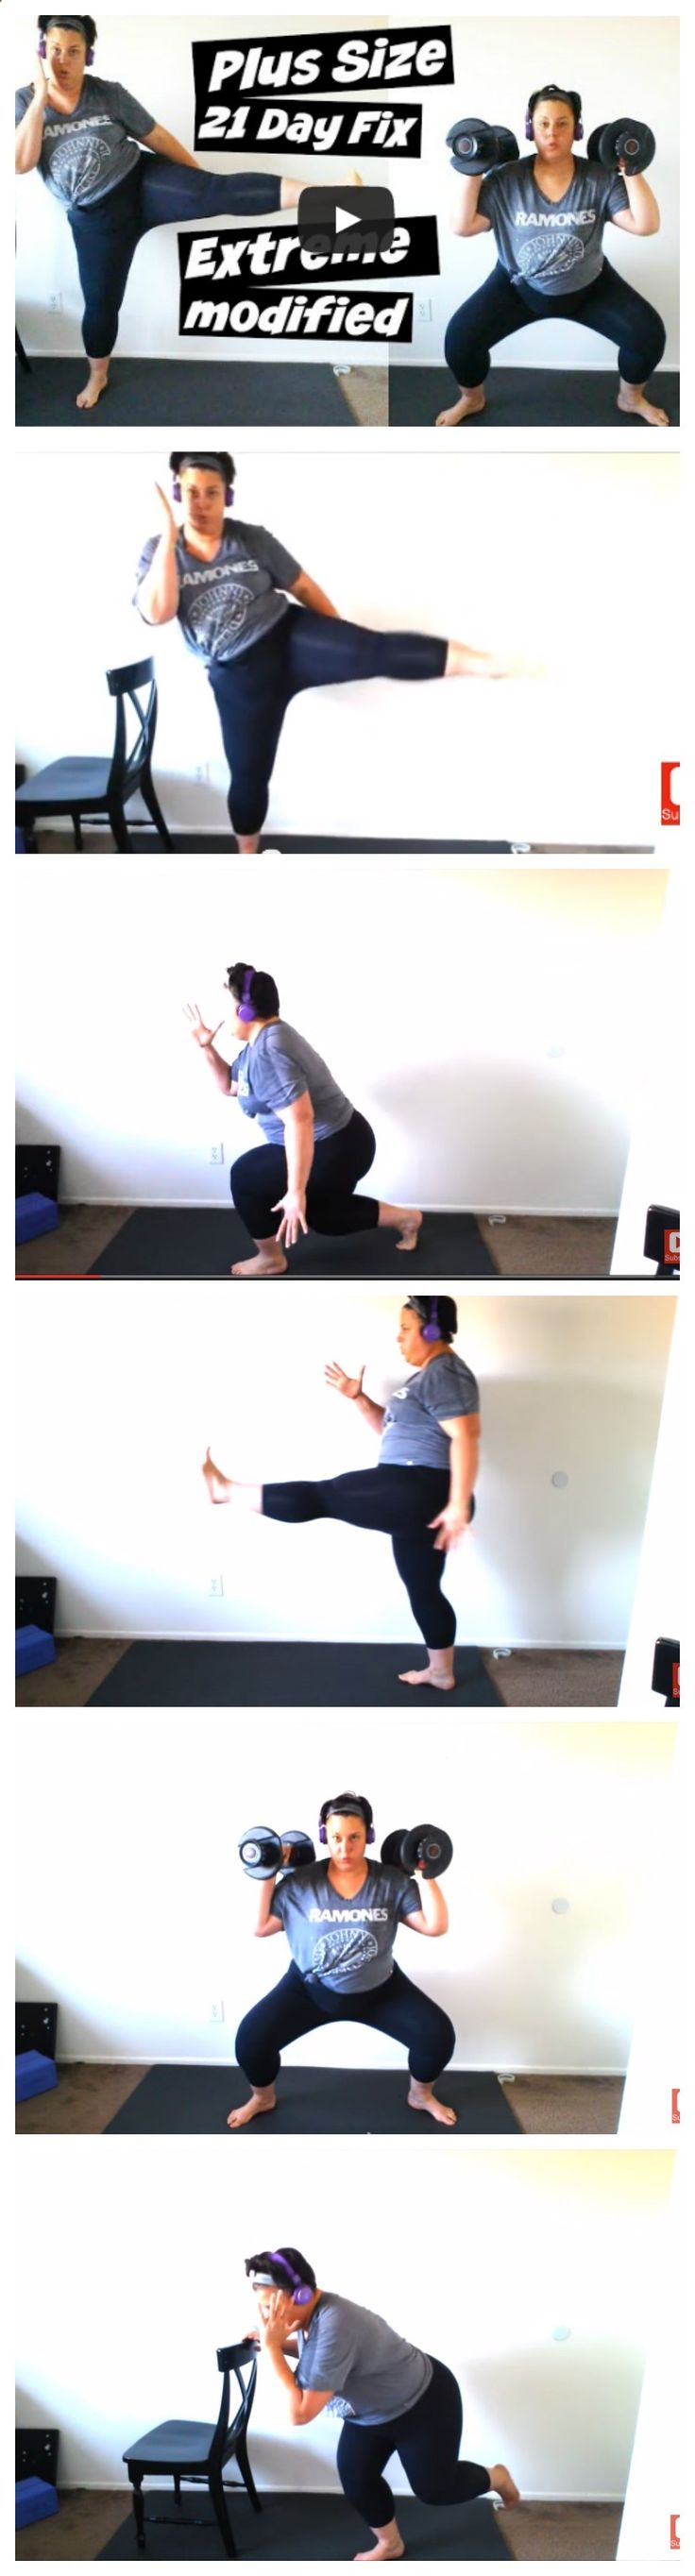 Plus Size 21 Day Fix Extreme Workout Modification. This is how I modify the workouts at my ability and challenge it. This is not a video lesson on proper form, it is an example of how far I have come from when I started at over 330 lbs. and unable to lunge or squat. This video is FULL of modifications that can be used in programs like 21 Day Fix, P90X, Insanity Max :30, and Extreme. - CLICK PICTURE to WATCH full video - #plussize #workout #exercise #modification #weightloss #results --...